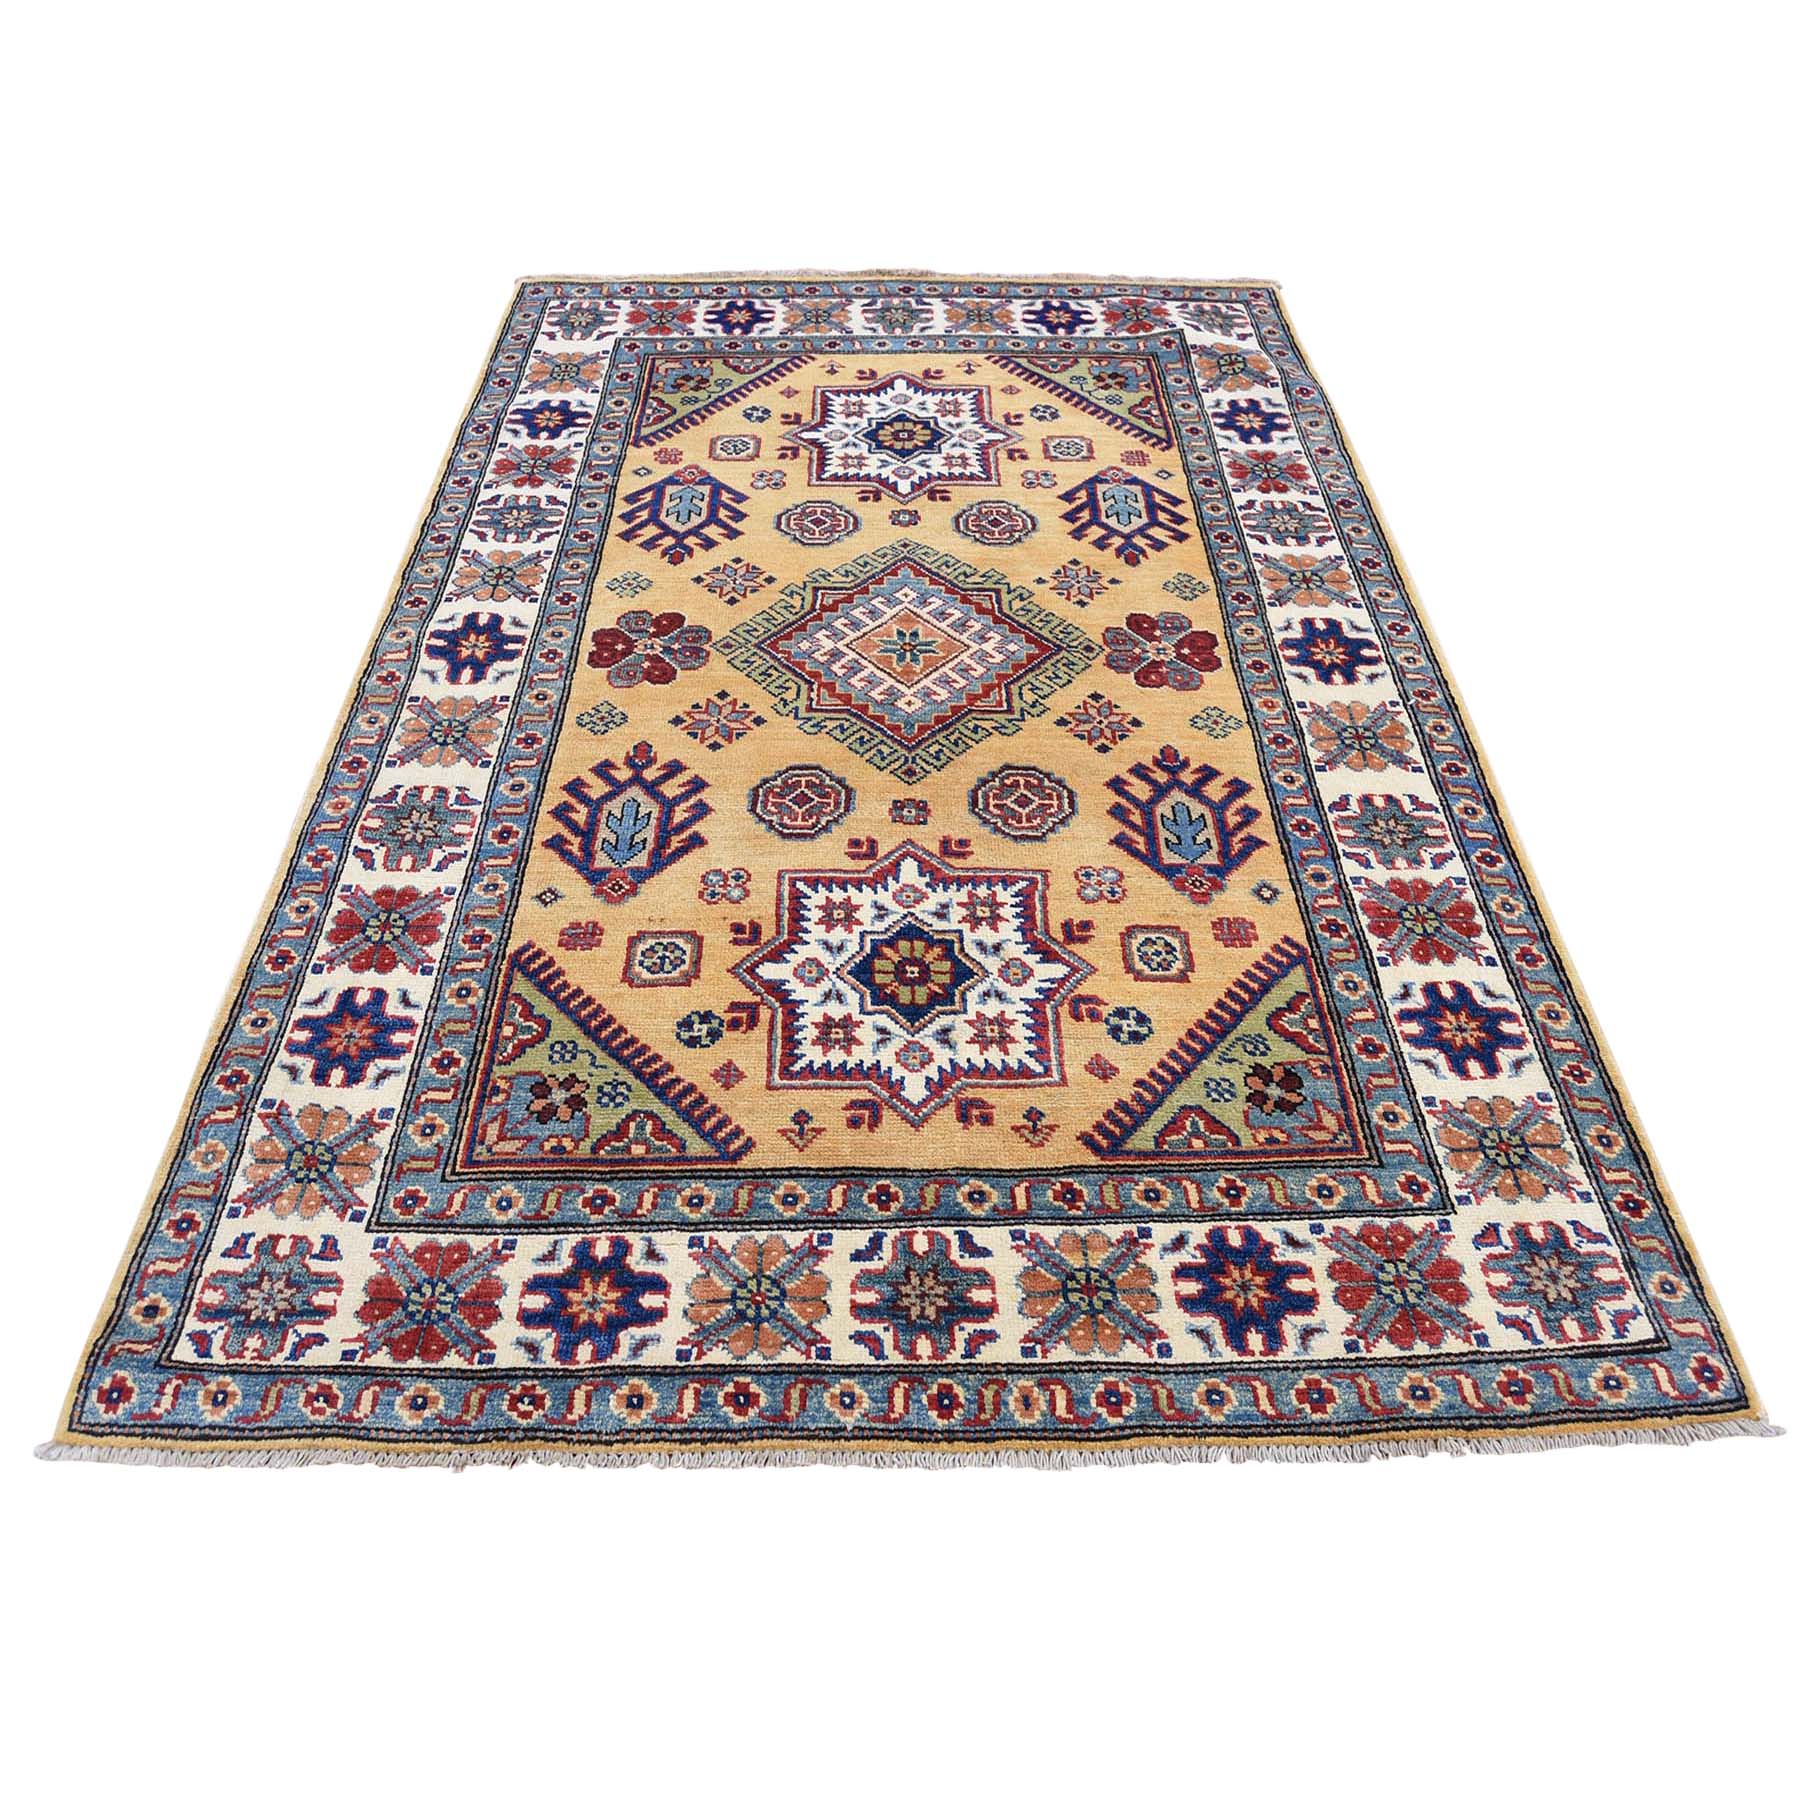 4'2''x5'10'' Gold Special Kazak Tribal Design Hand-Knotted Oriental Rug